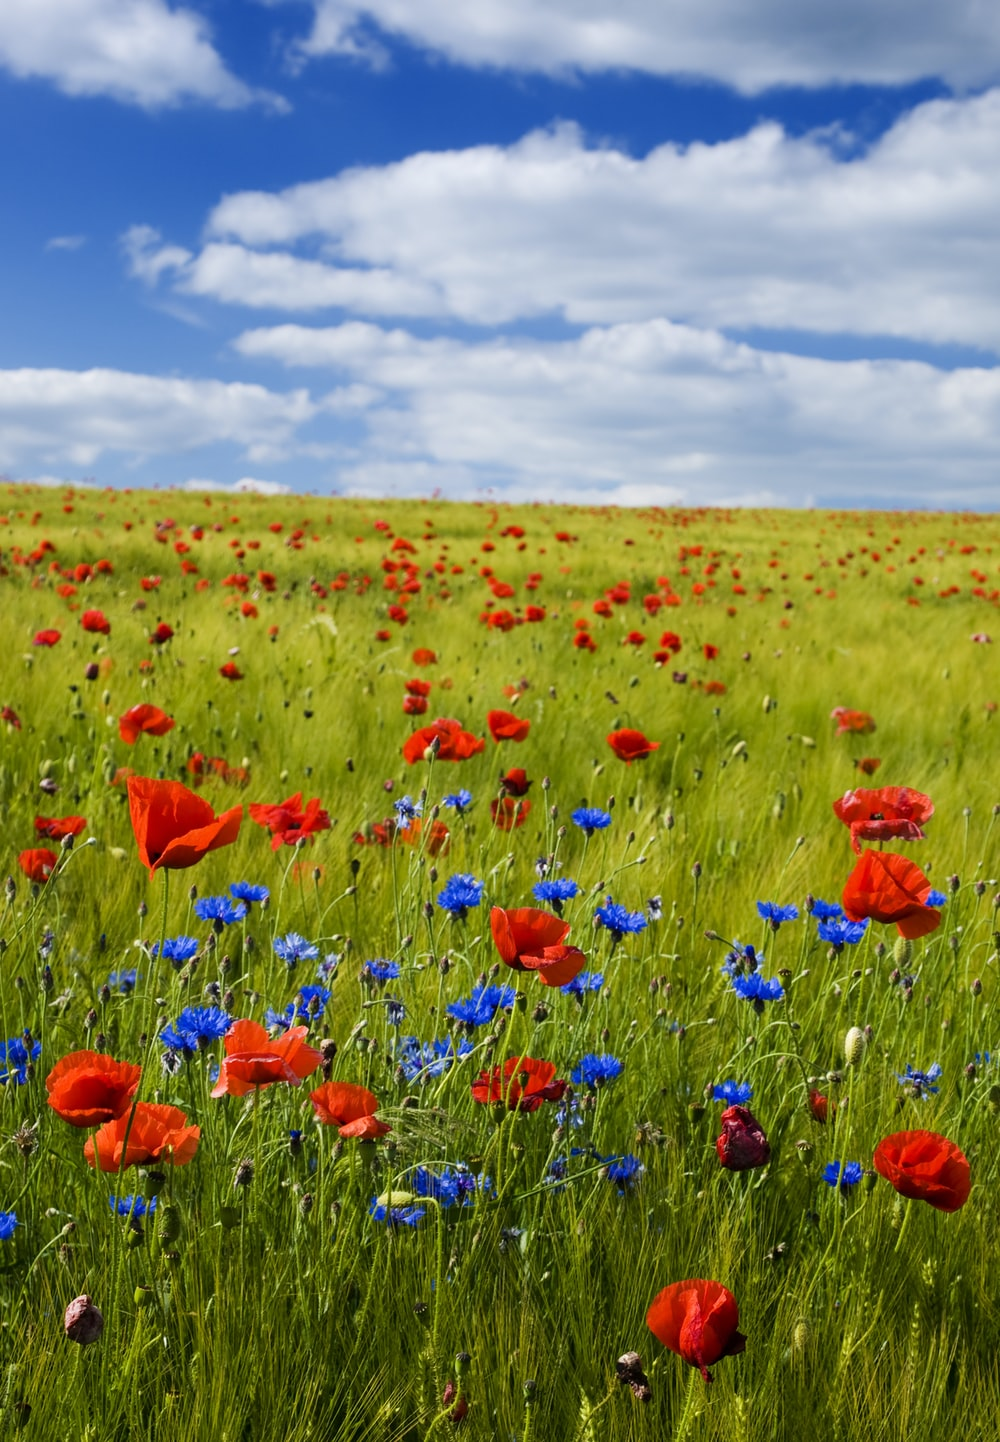 red flowers under the blue sky